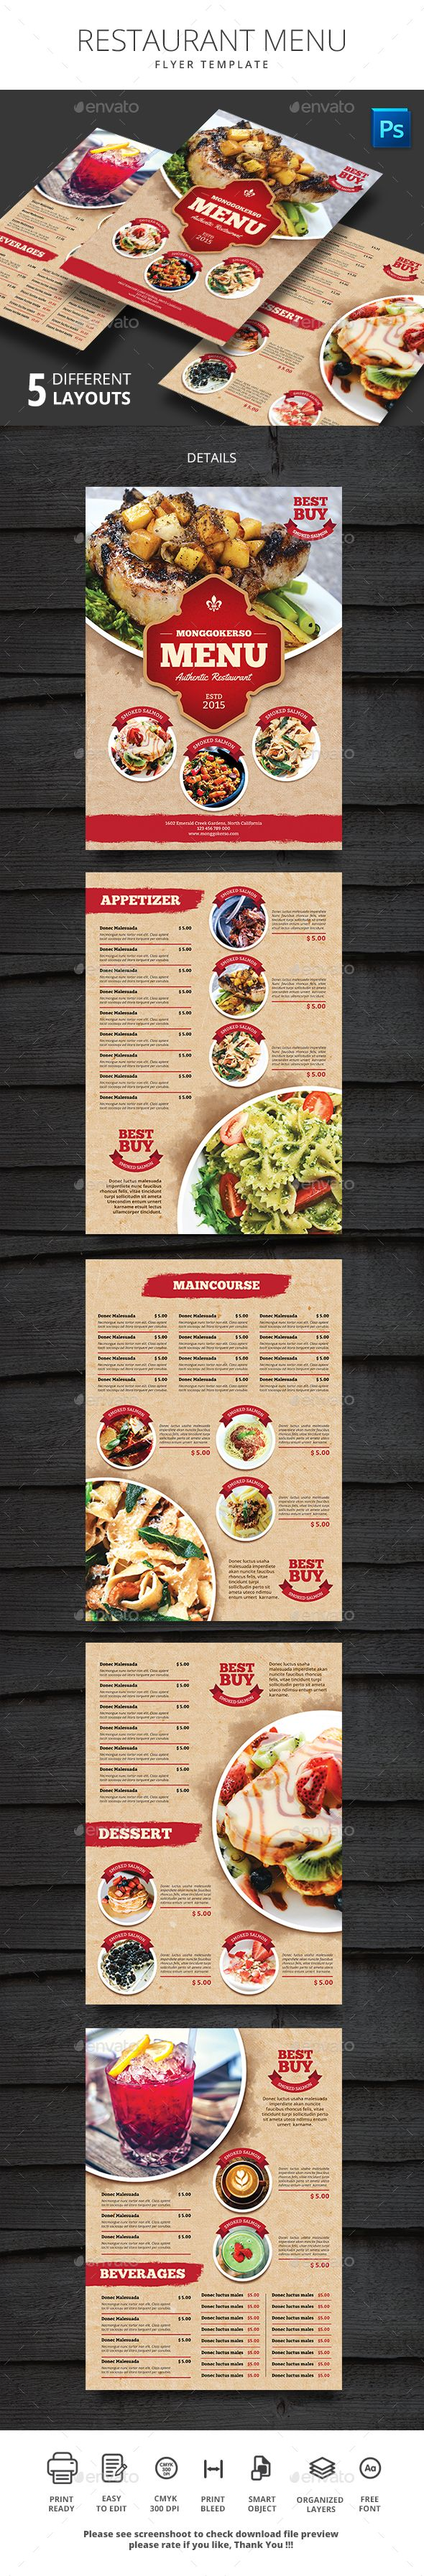 Restaurant Menu  — PSD Template #menu templates #print template • Download ➝ https://graphicriver.net/item/restaurant-menu/18404032?ref=pxcr